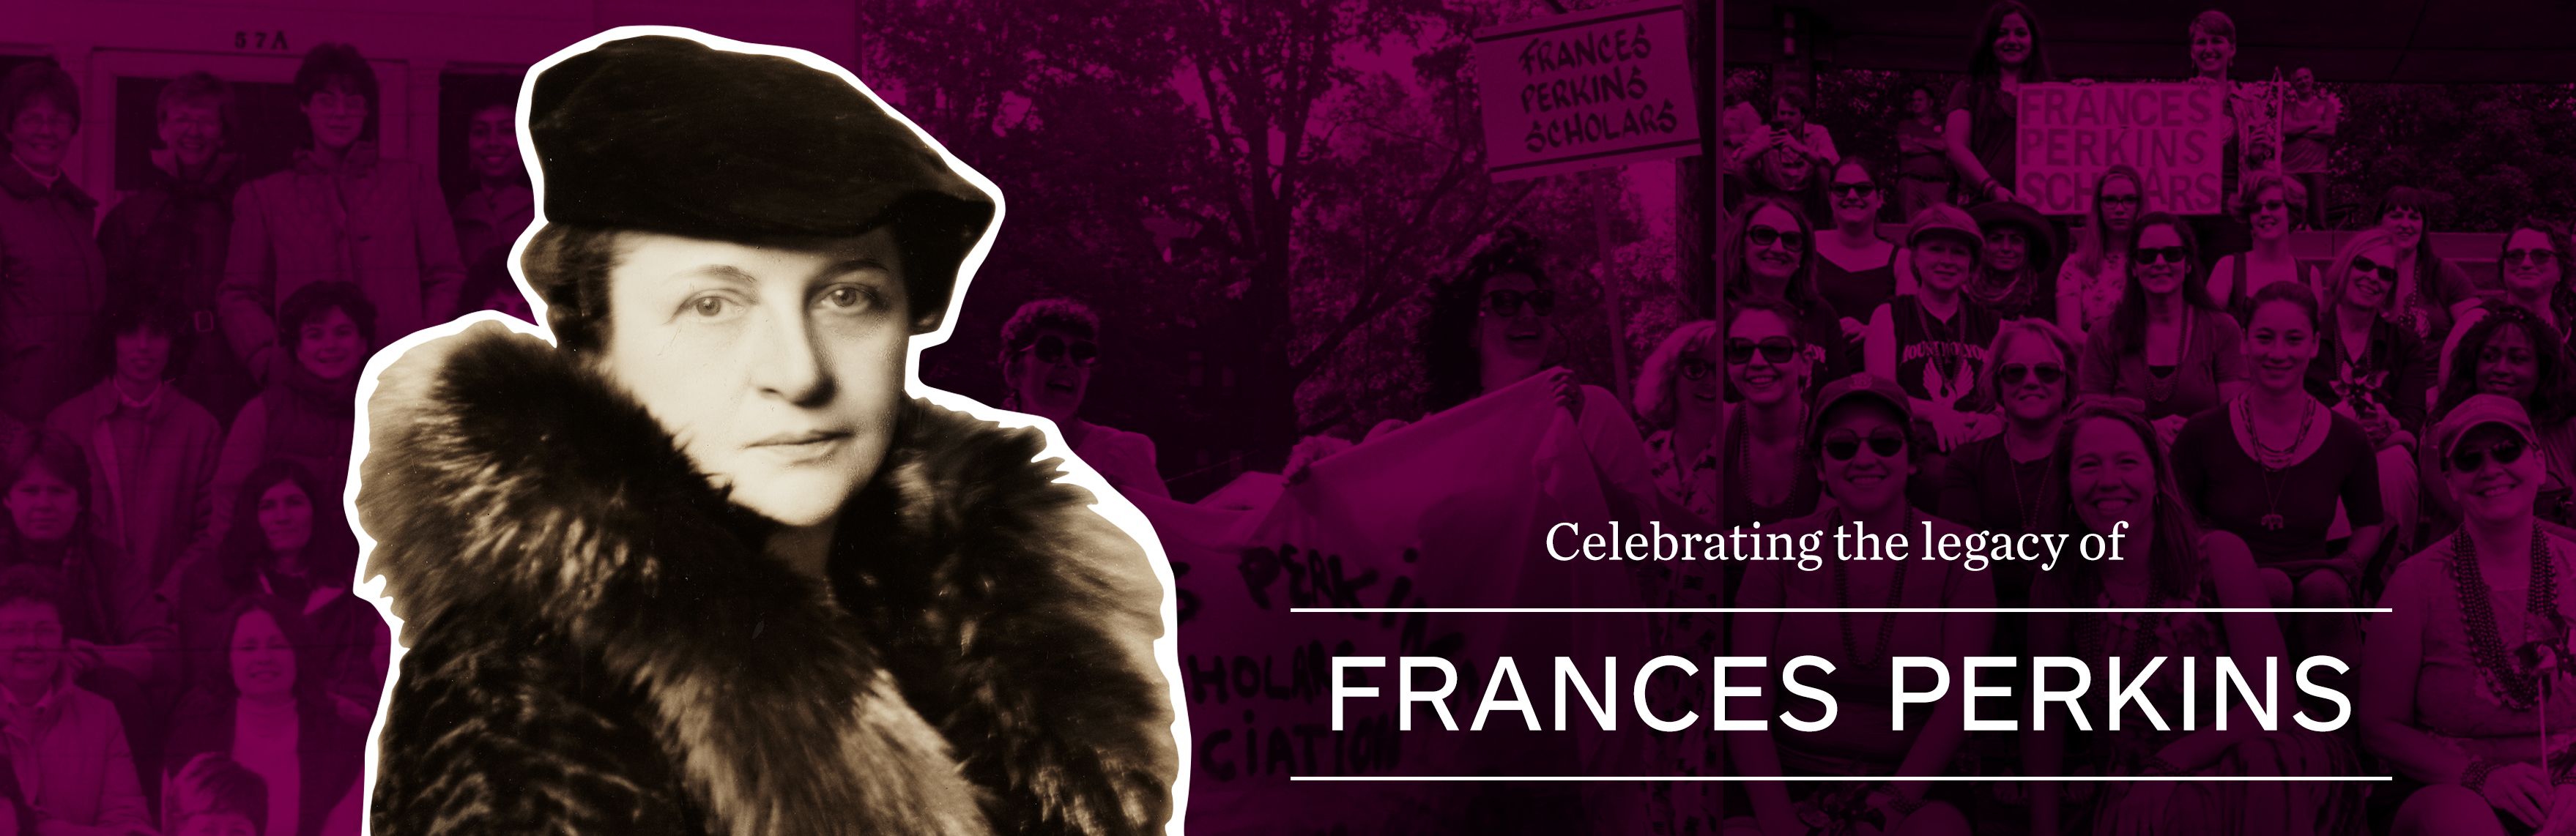 Celebrating the legacy of Frances Perkins, Class of 1902